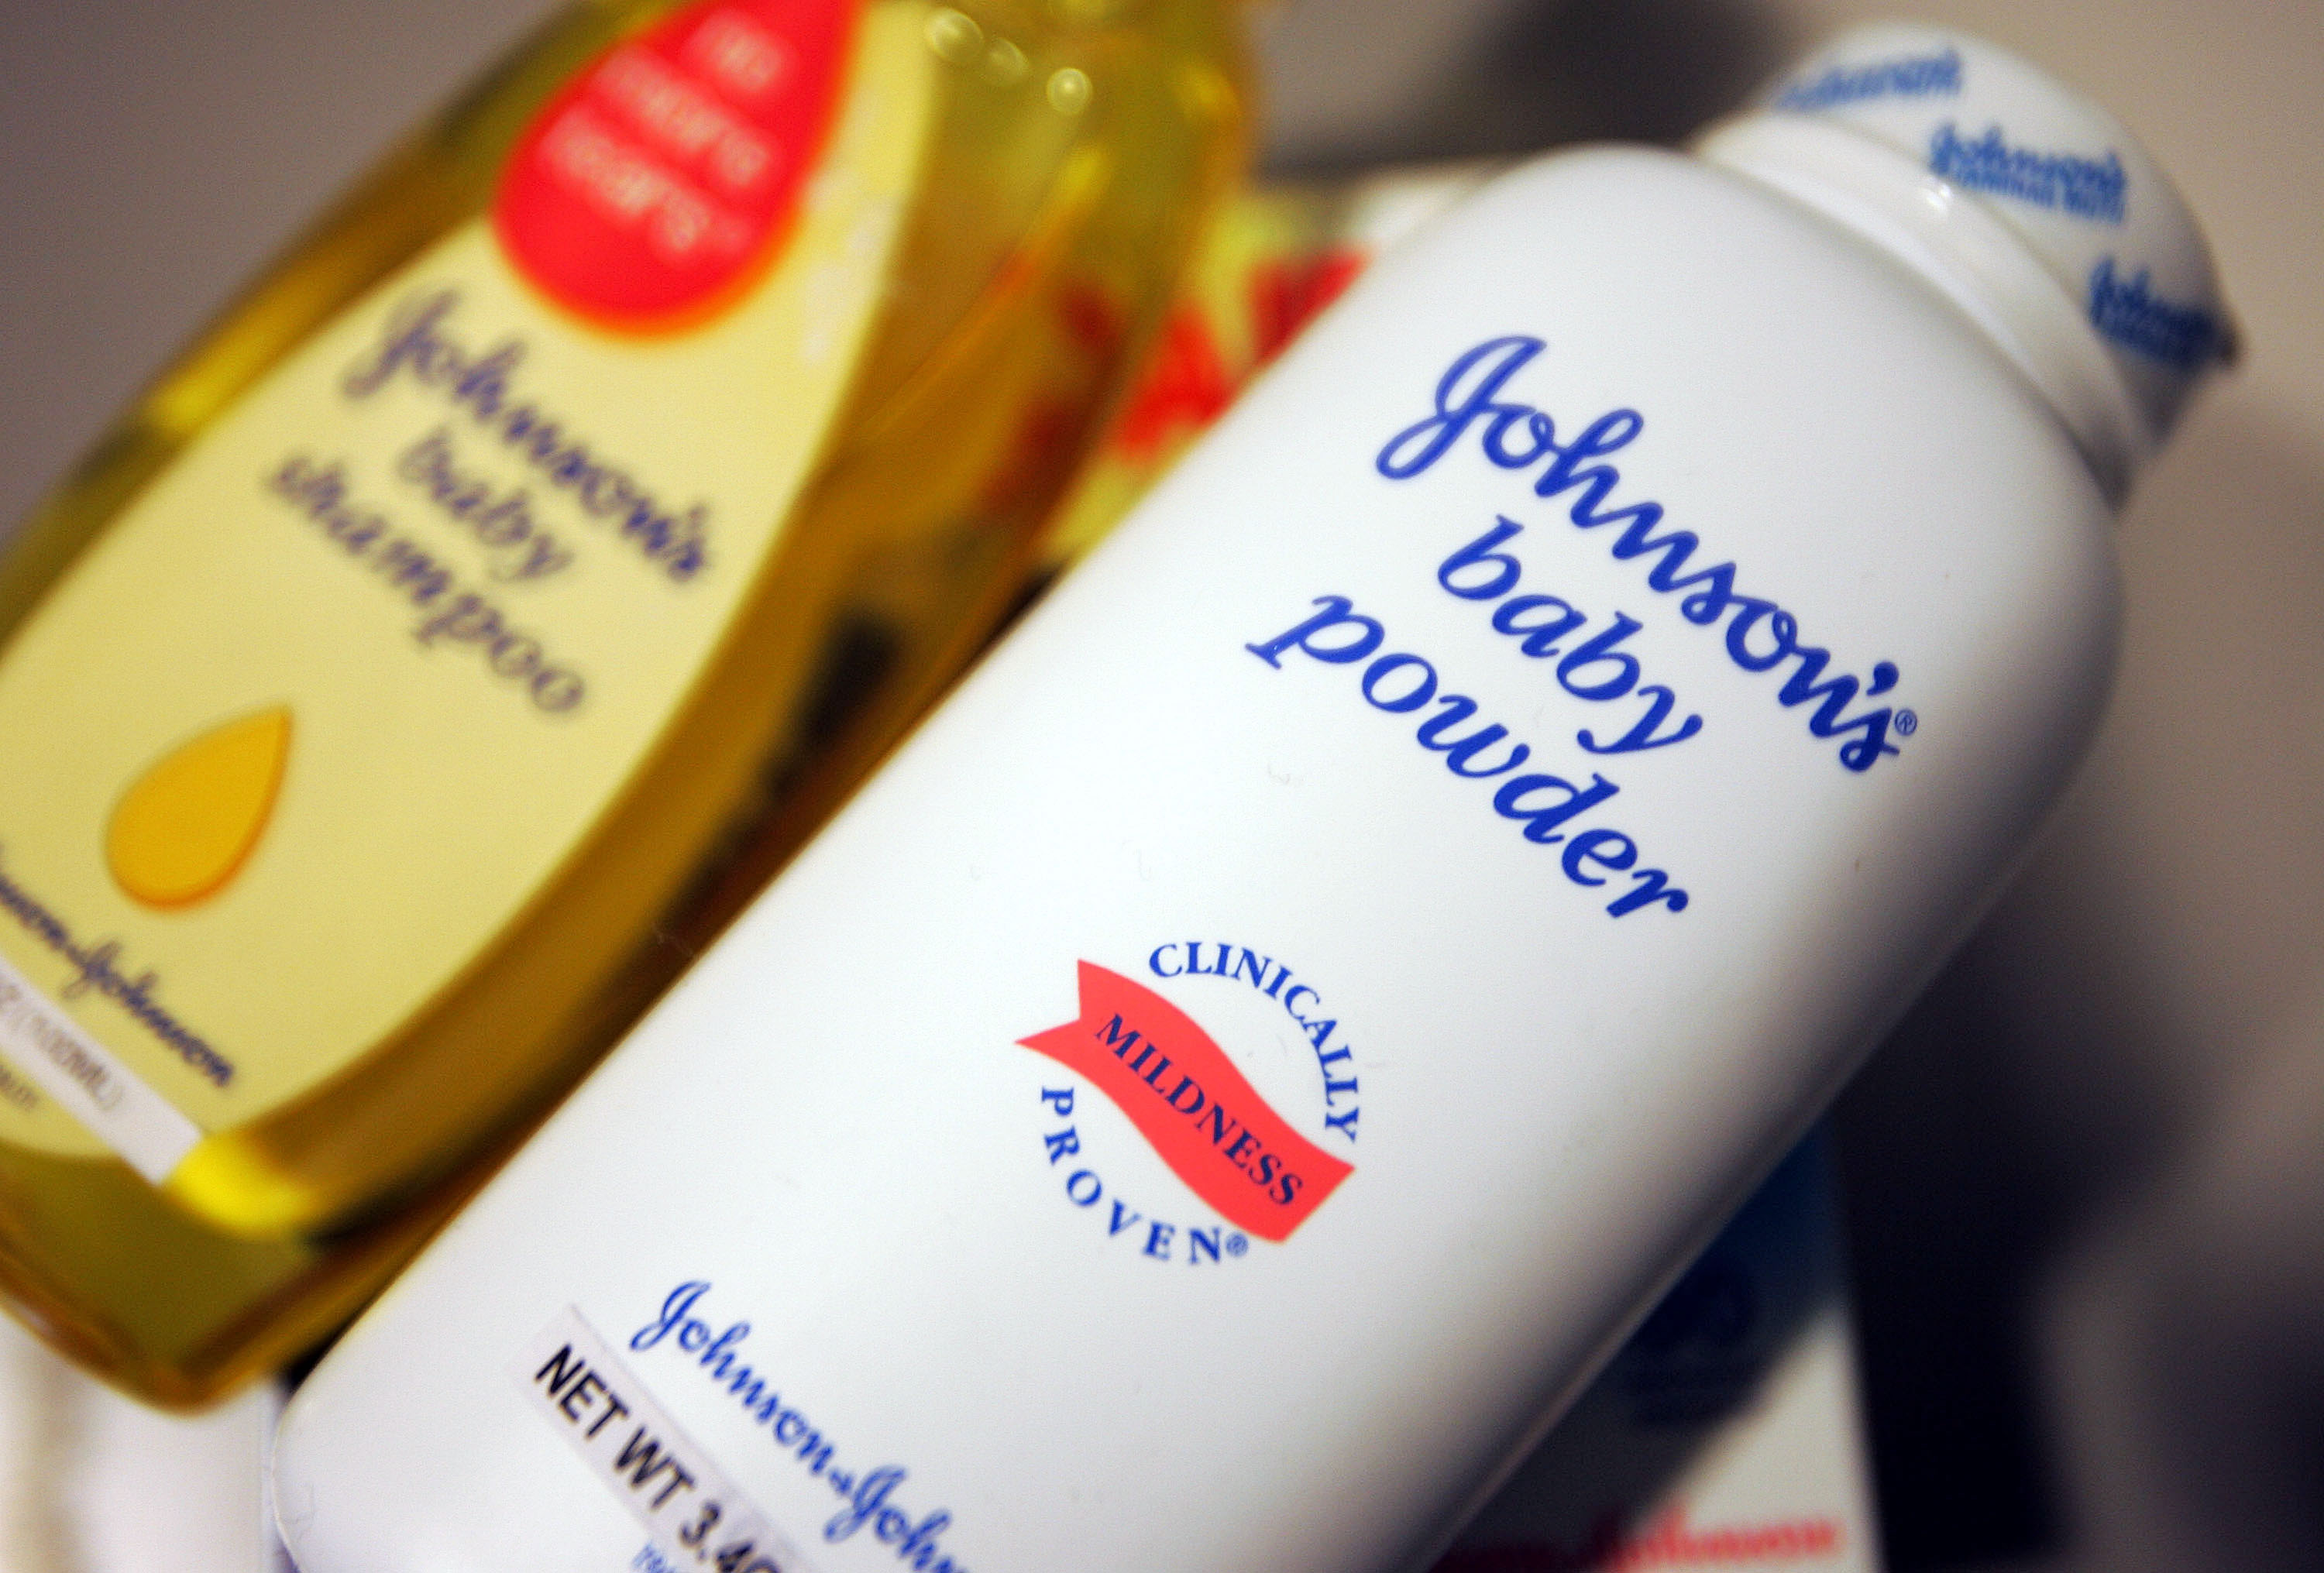 Johnson & Johnson's products are seen December 16, 2004 in New York. Johnson & Johnson's agreed to buy Guidant Corp, a defibrillator manufacturer for $25.4 billion.